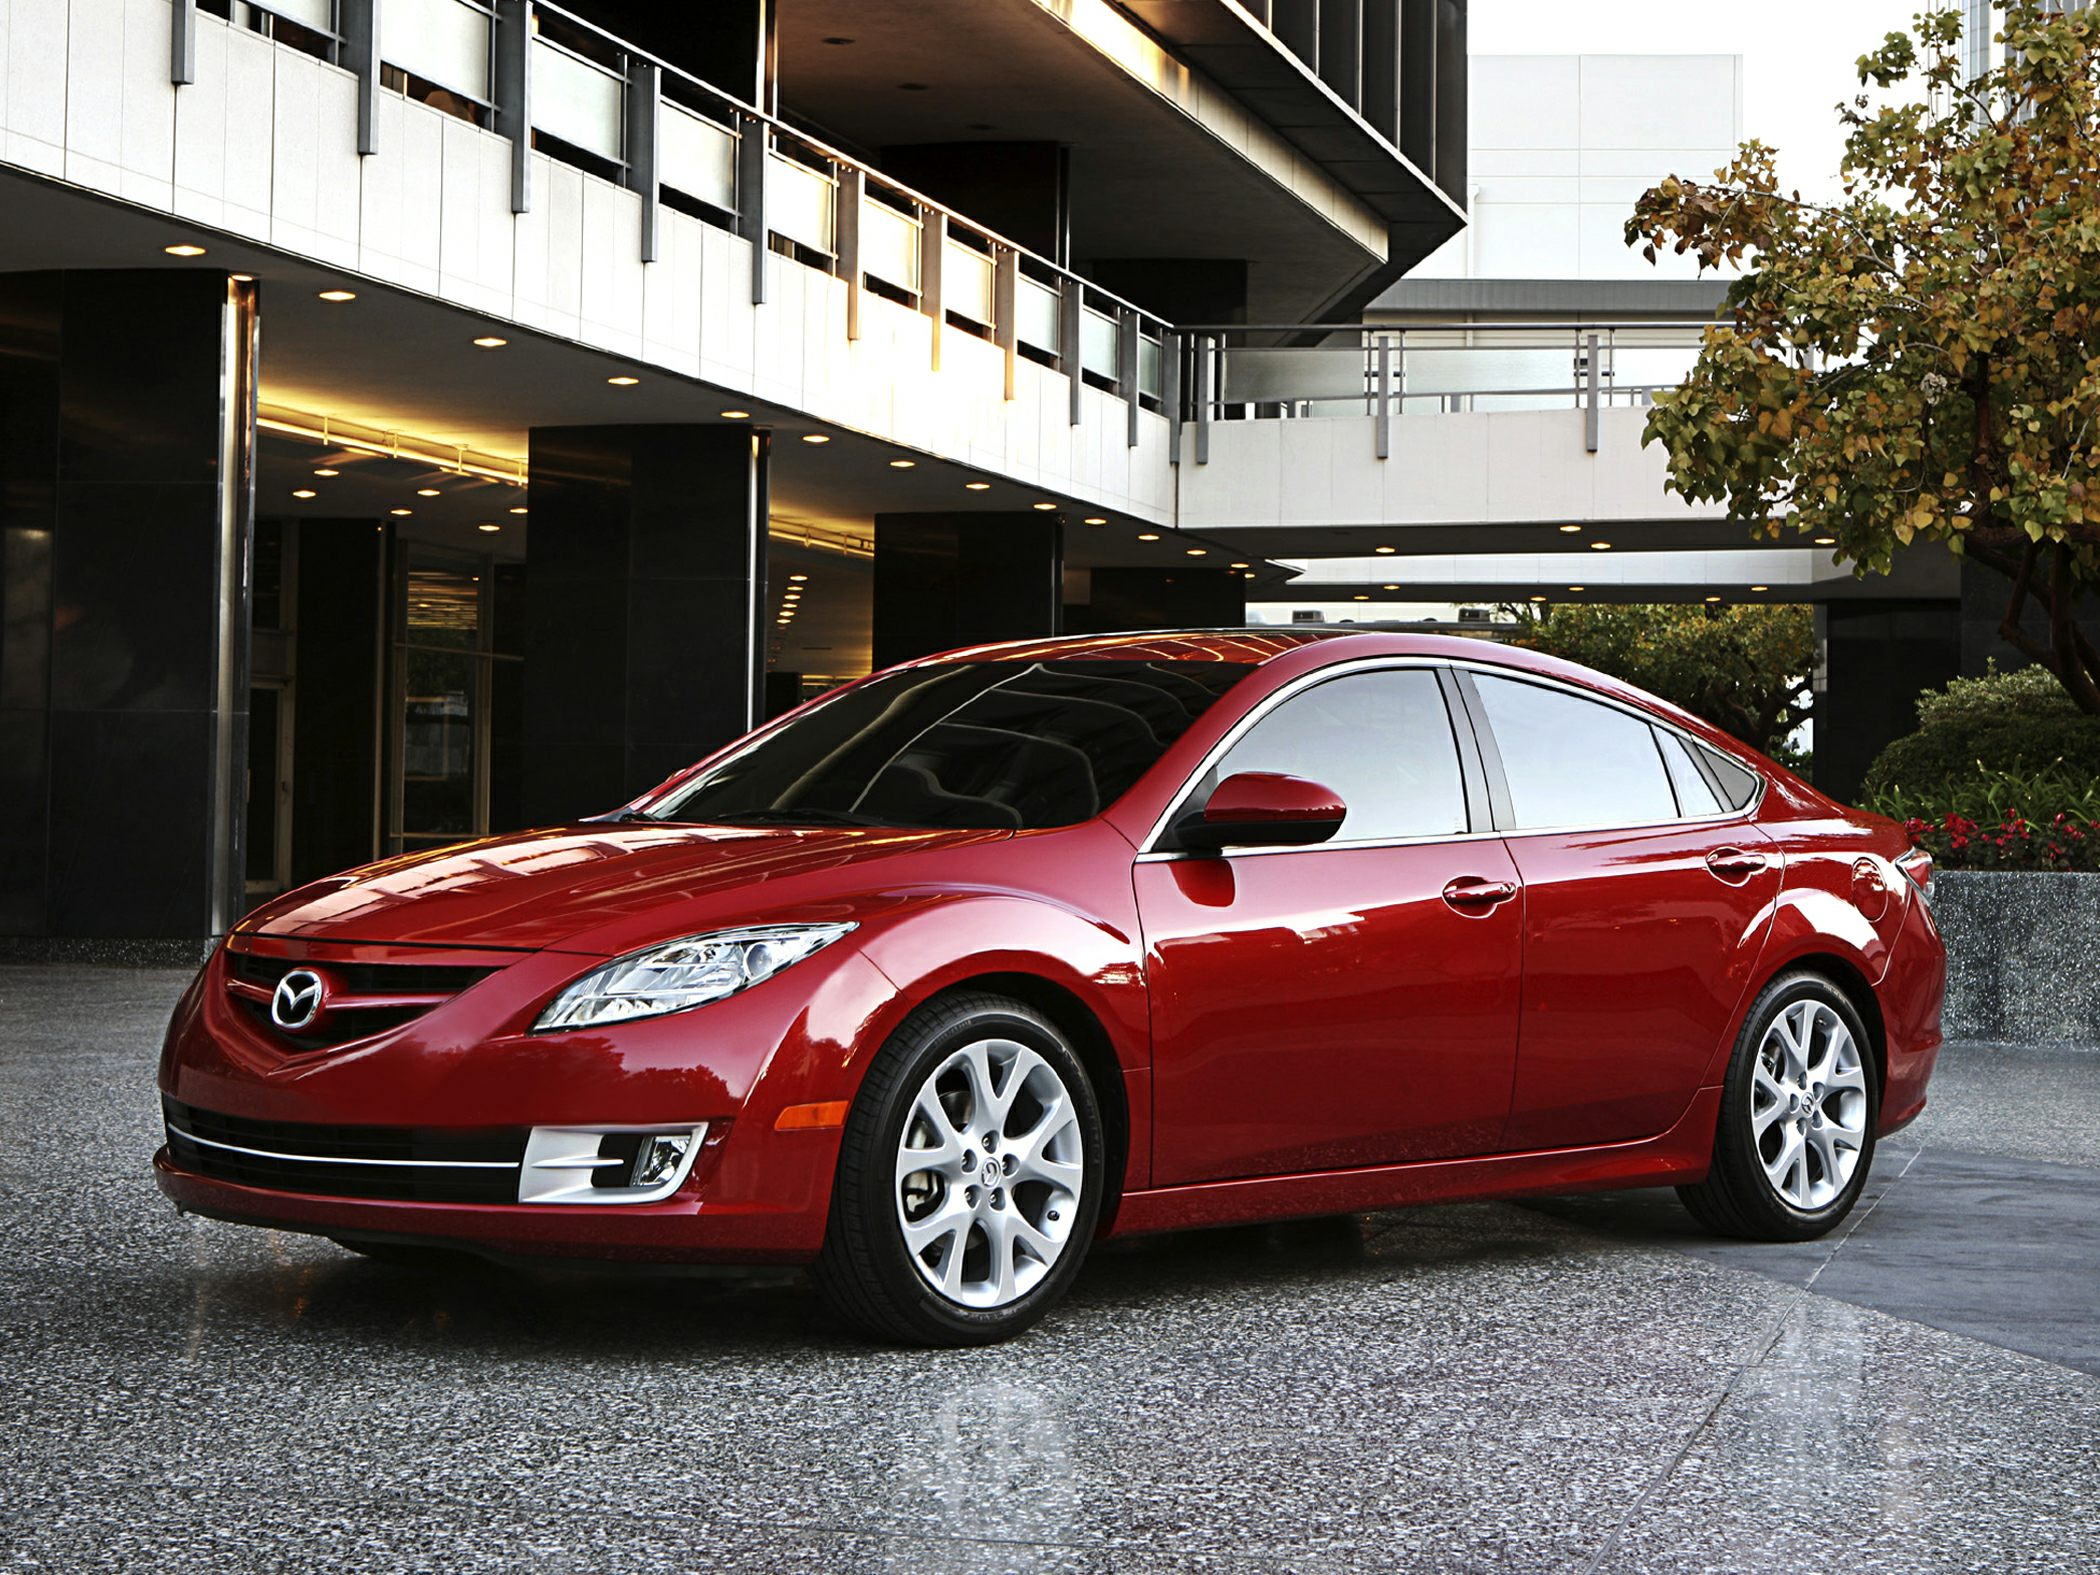 2013 Mazda MAZDA6 Photo